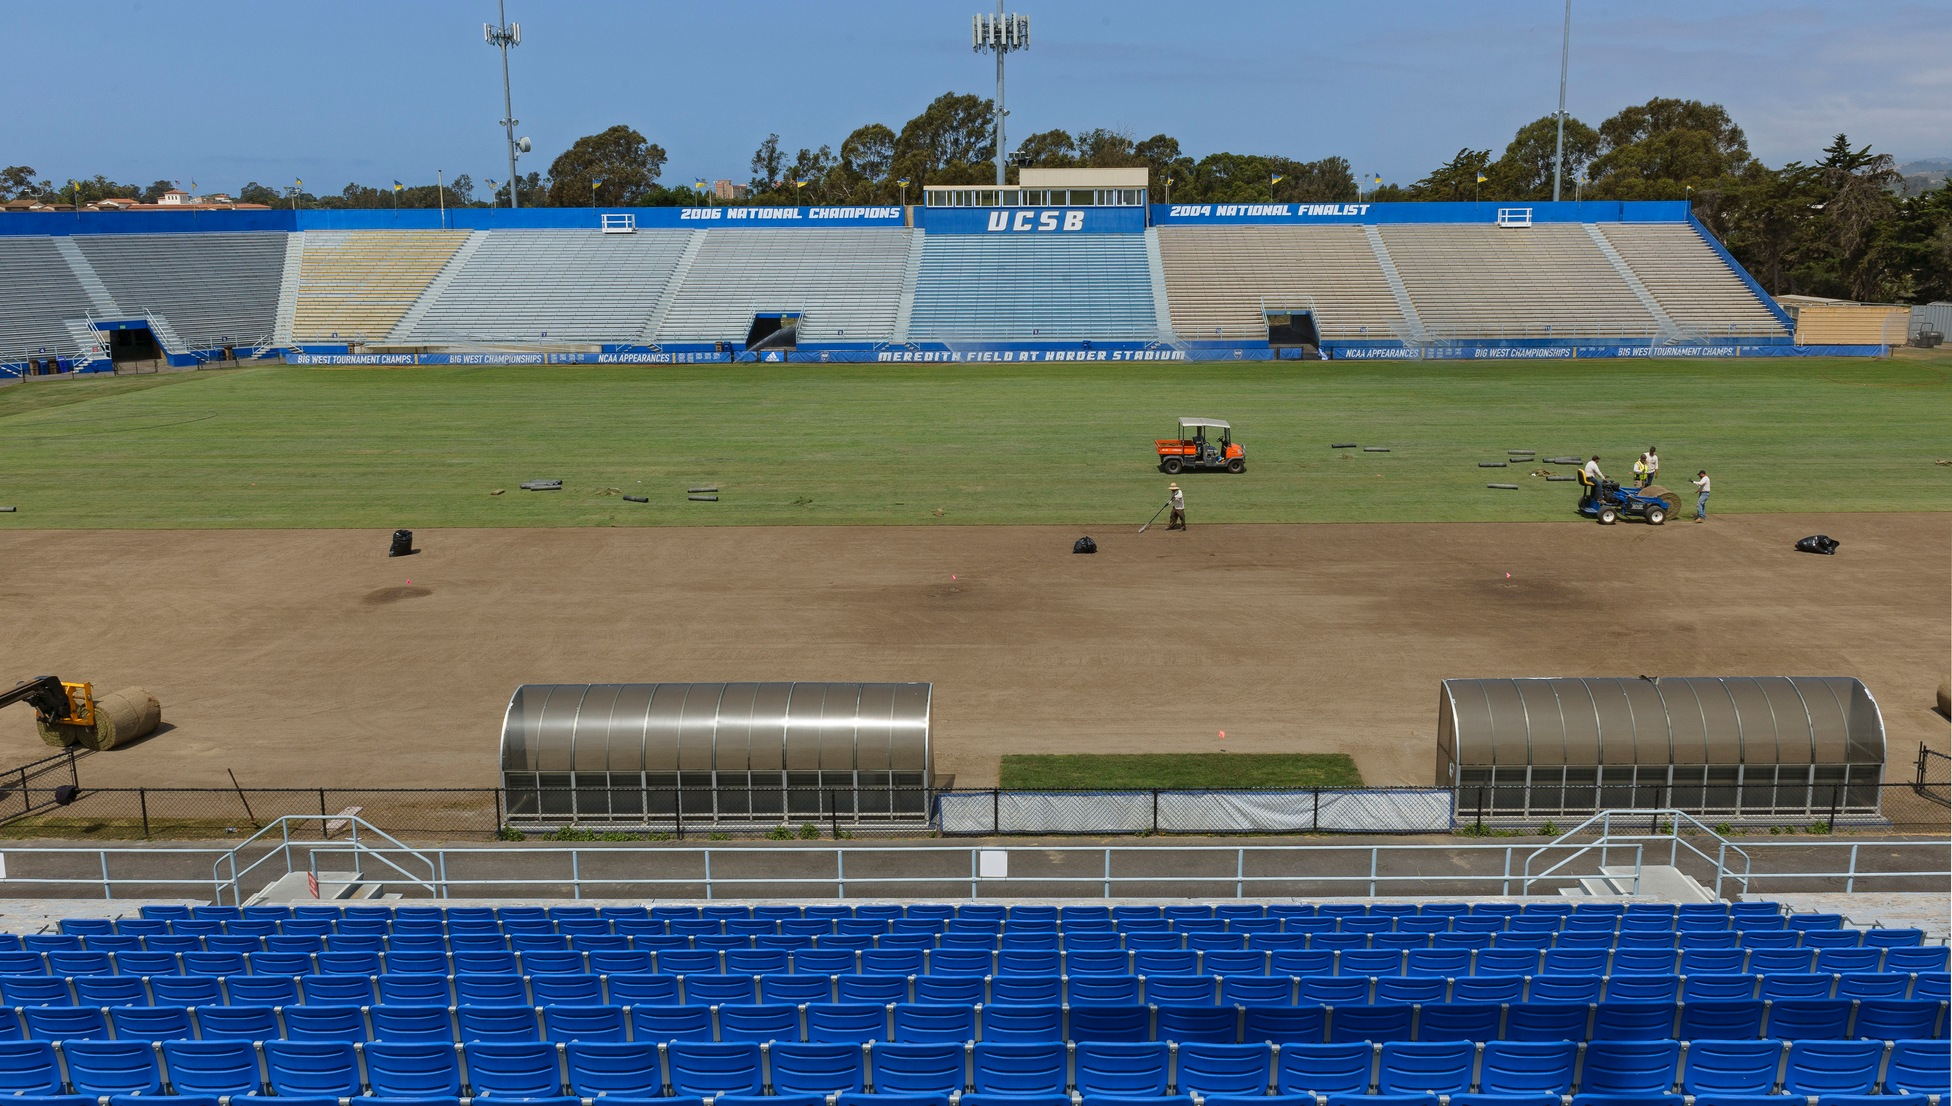 Harder Stadium is currently undergoing renovations as UCSB prepares to host the 2018 College Cup in December. (Photo by Tony Mastres)